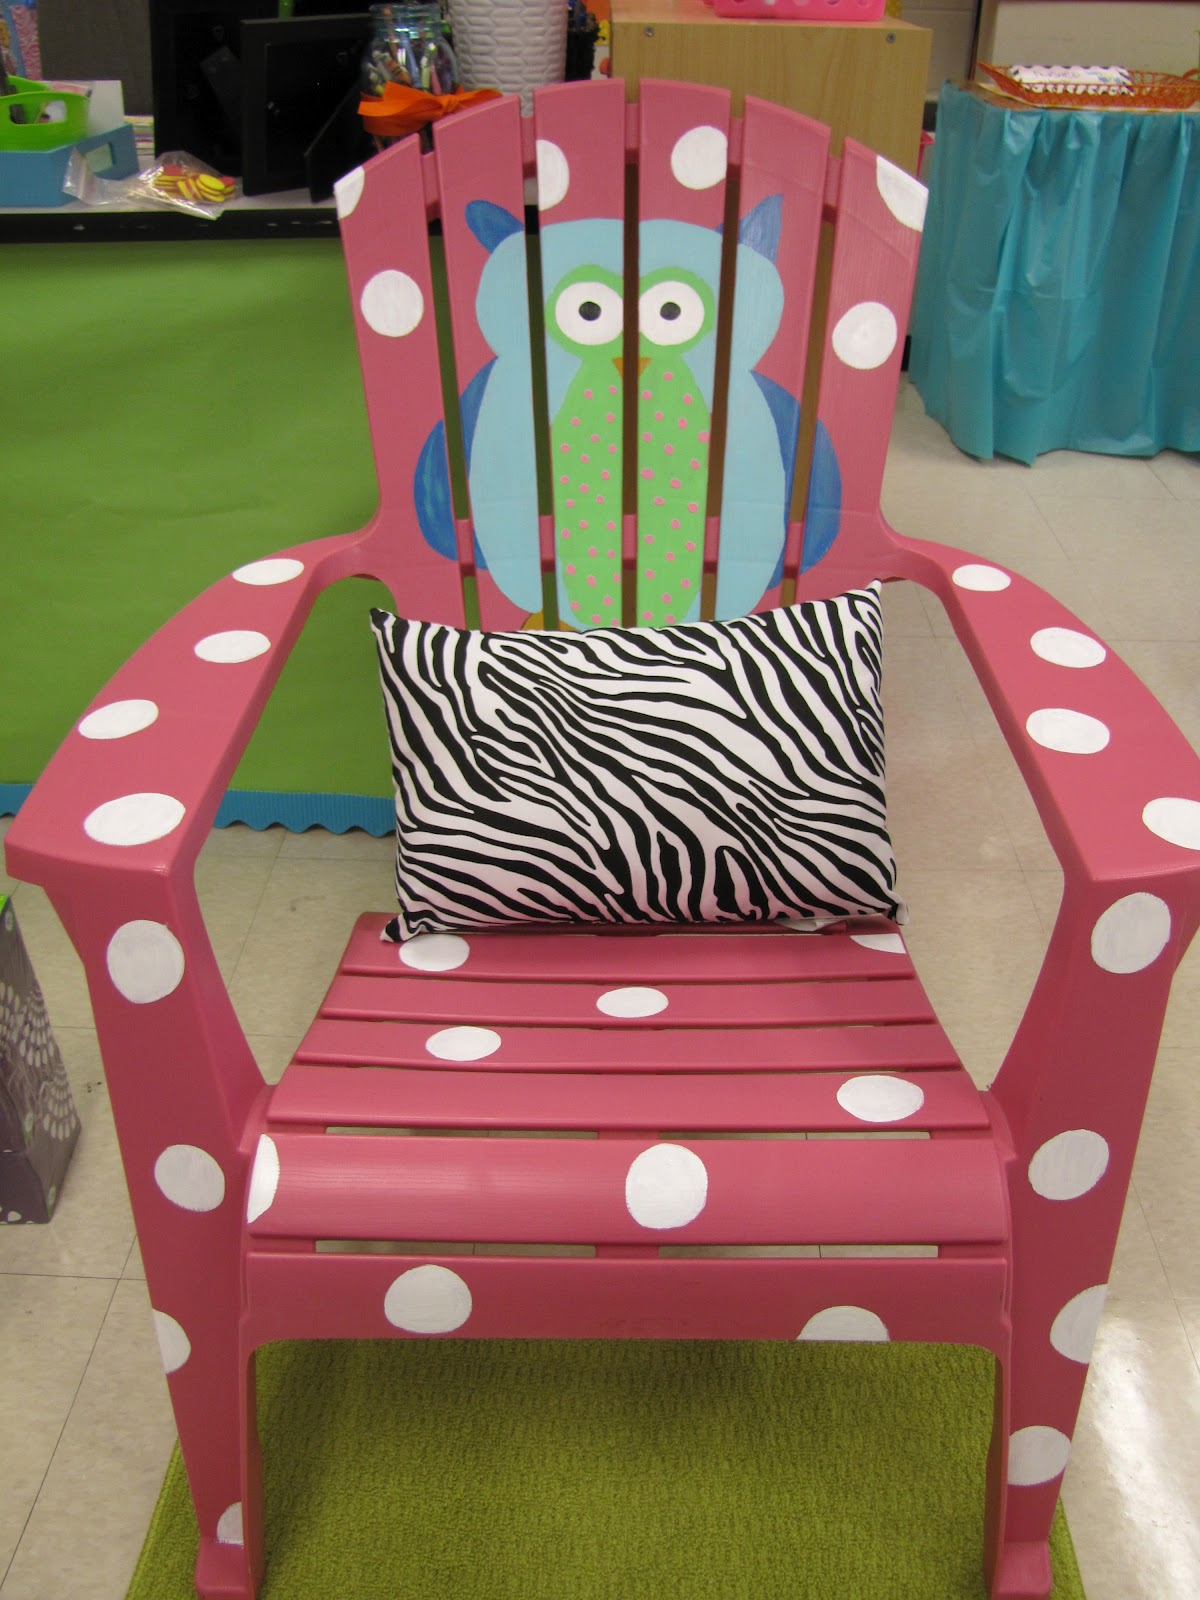 Teacher Rocking Chair Living Accents Adirondack My Classroom Part 1 The Lemonade Stand